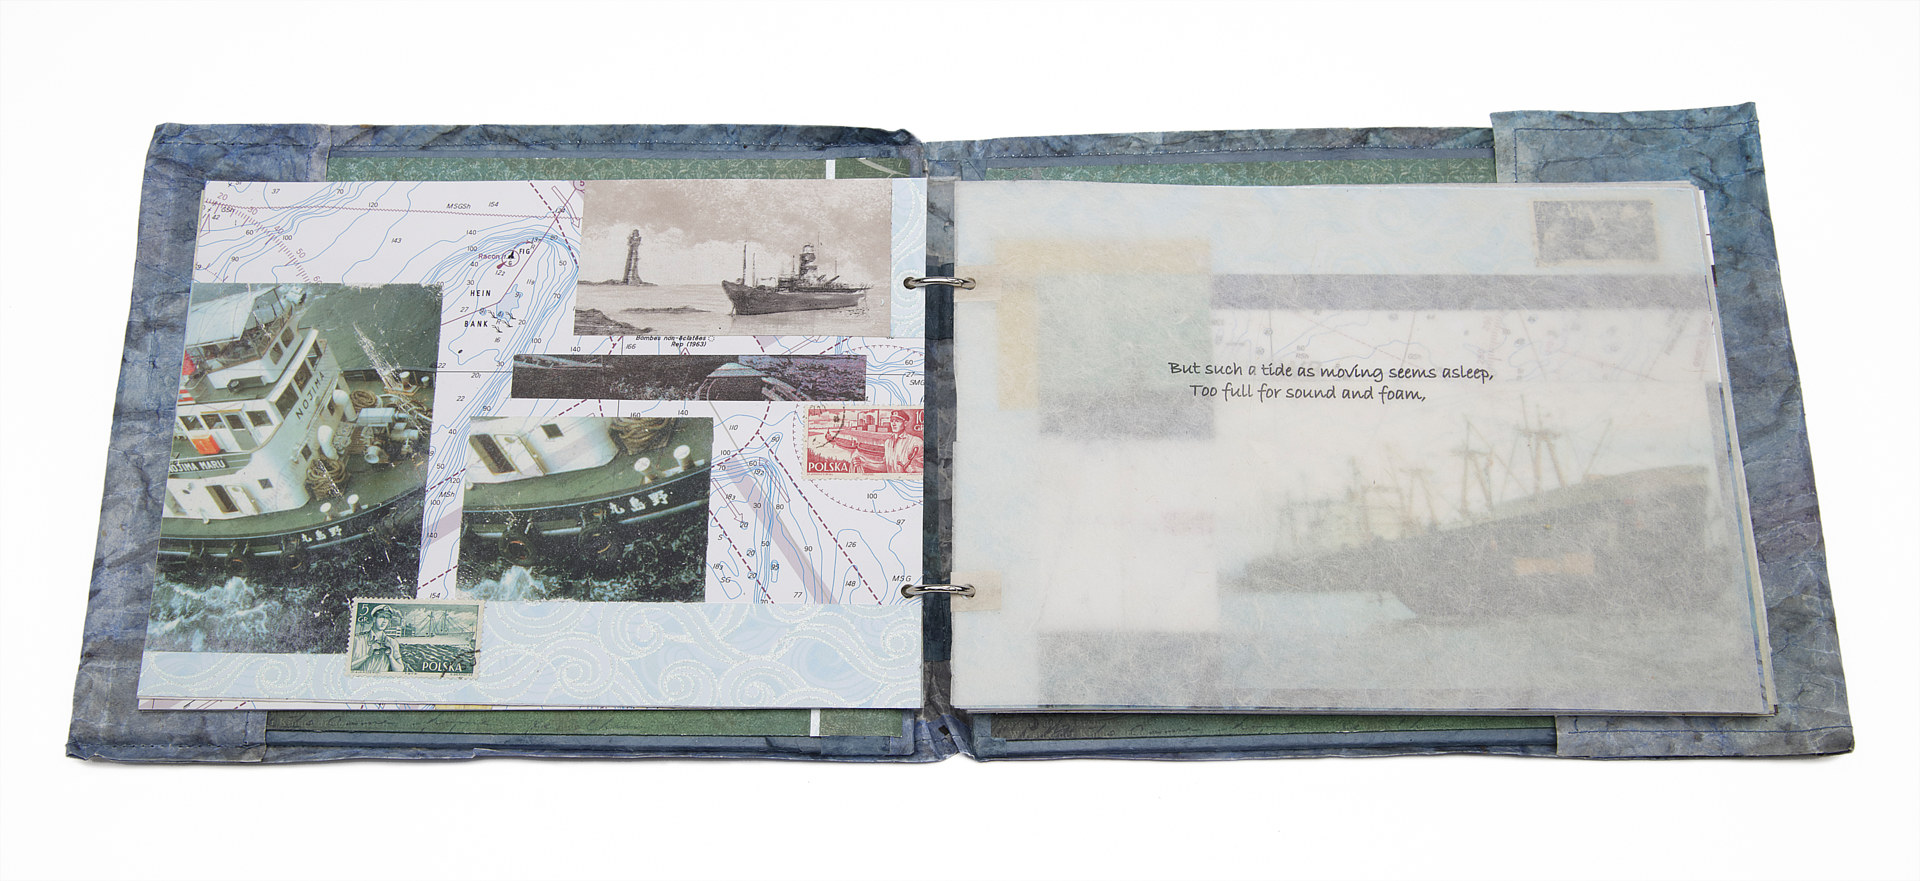 Nautical Log Book, Lithography, gel transfers, collage, assorted papers, glue, thread and 2 metal rings, Size (open) 47 x 22 x 2 cm, 16 pages, November 2013.  by Julie Mcintyre